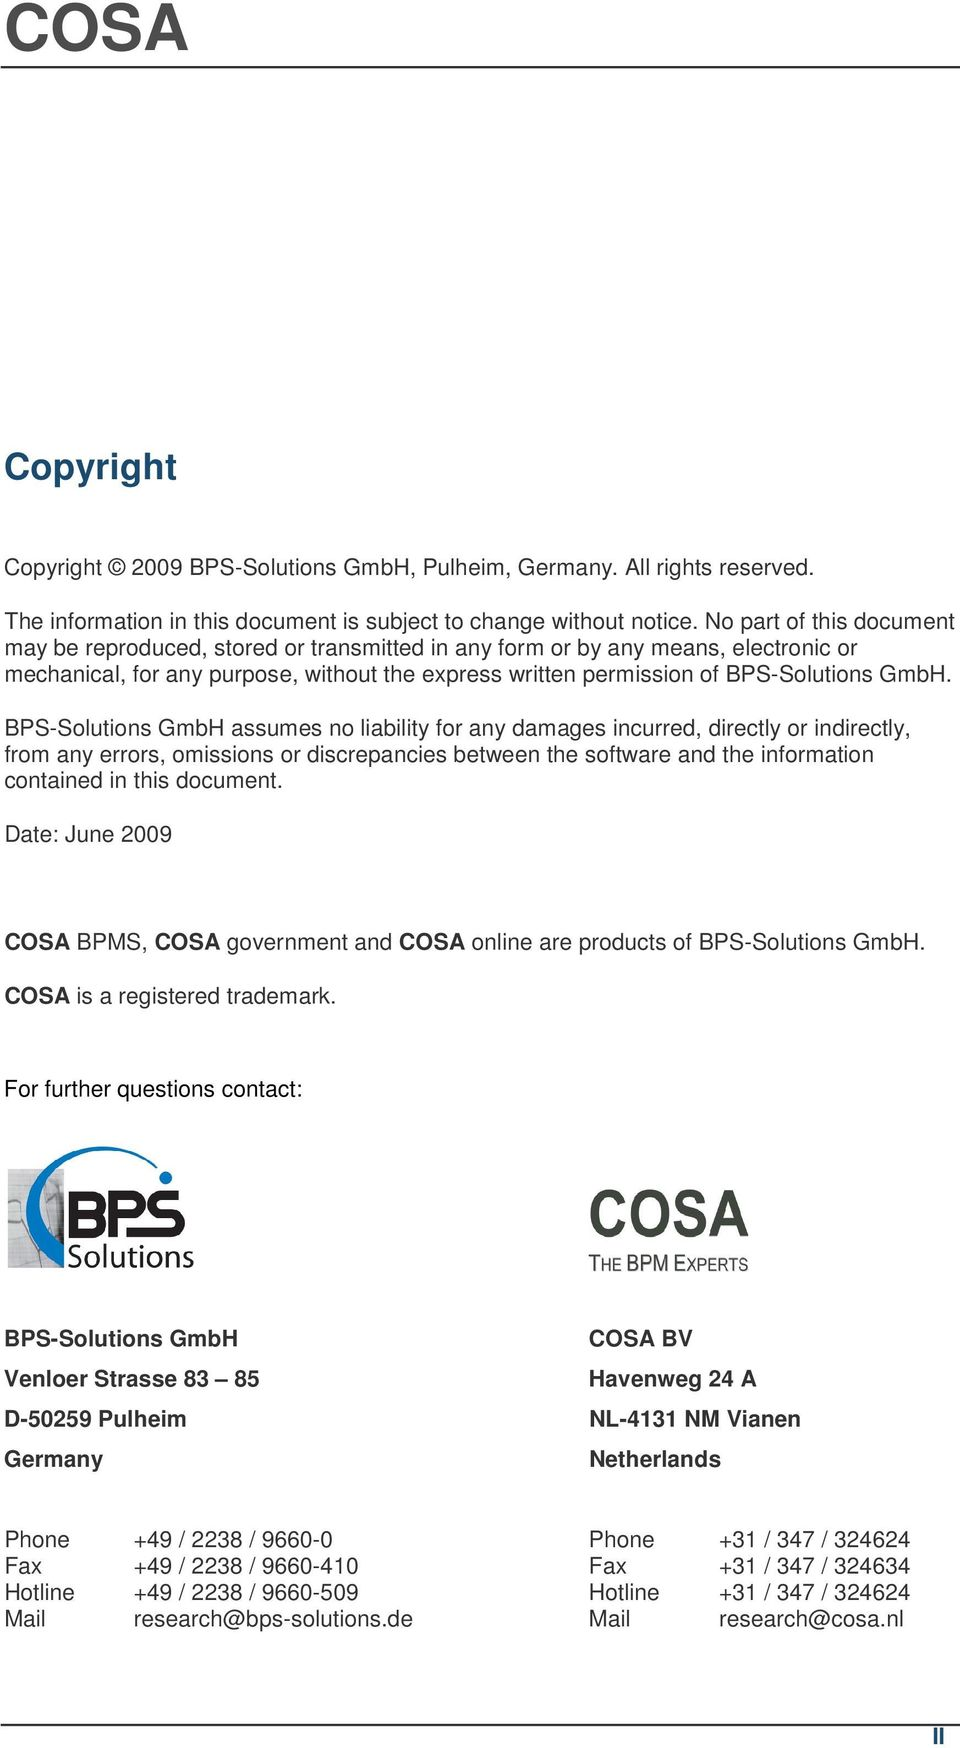 BPS-Solutions GmbH assumes no liability for any damages incurred, directly or indirectly, from any errors, omissions or discrepancies between the software and the information contained in this